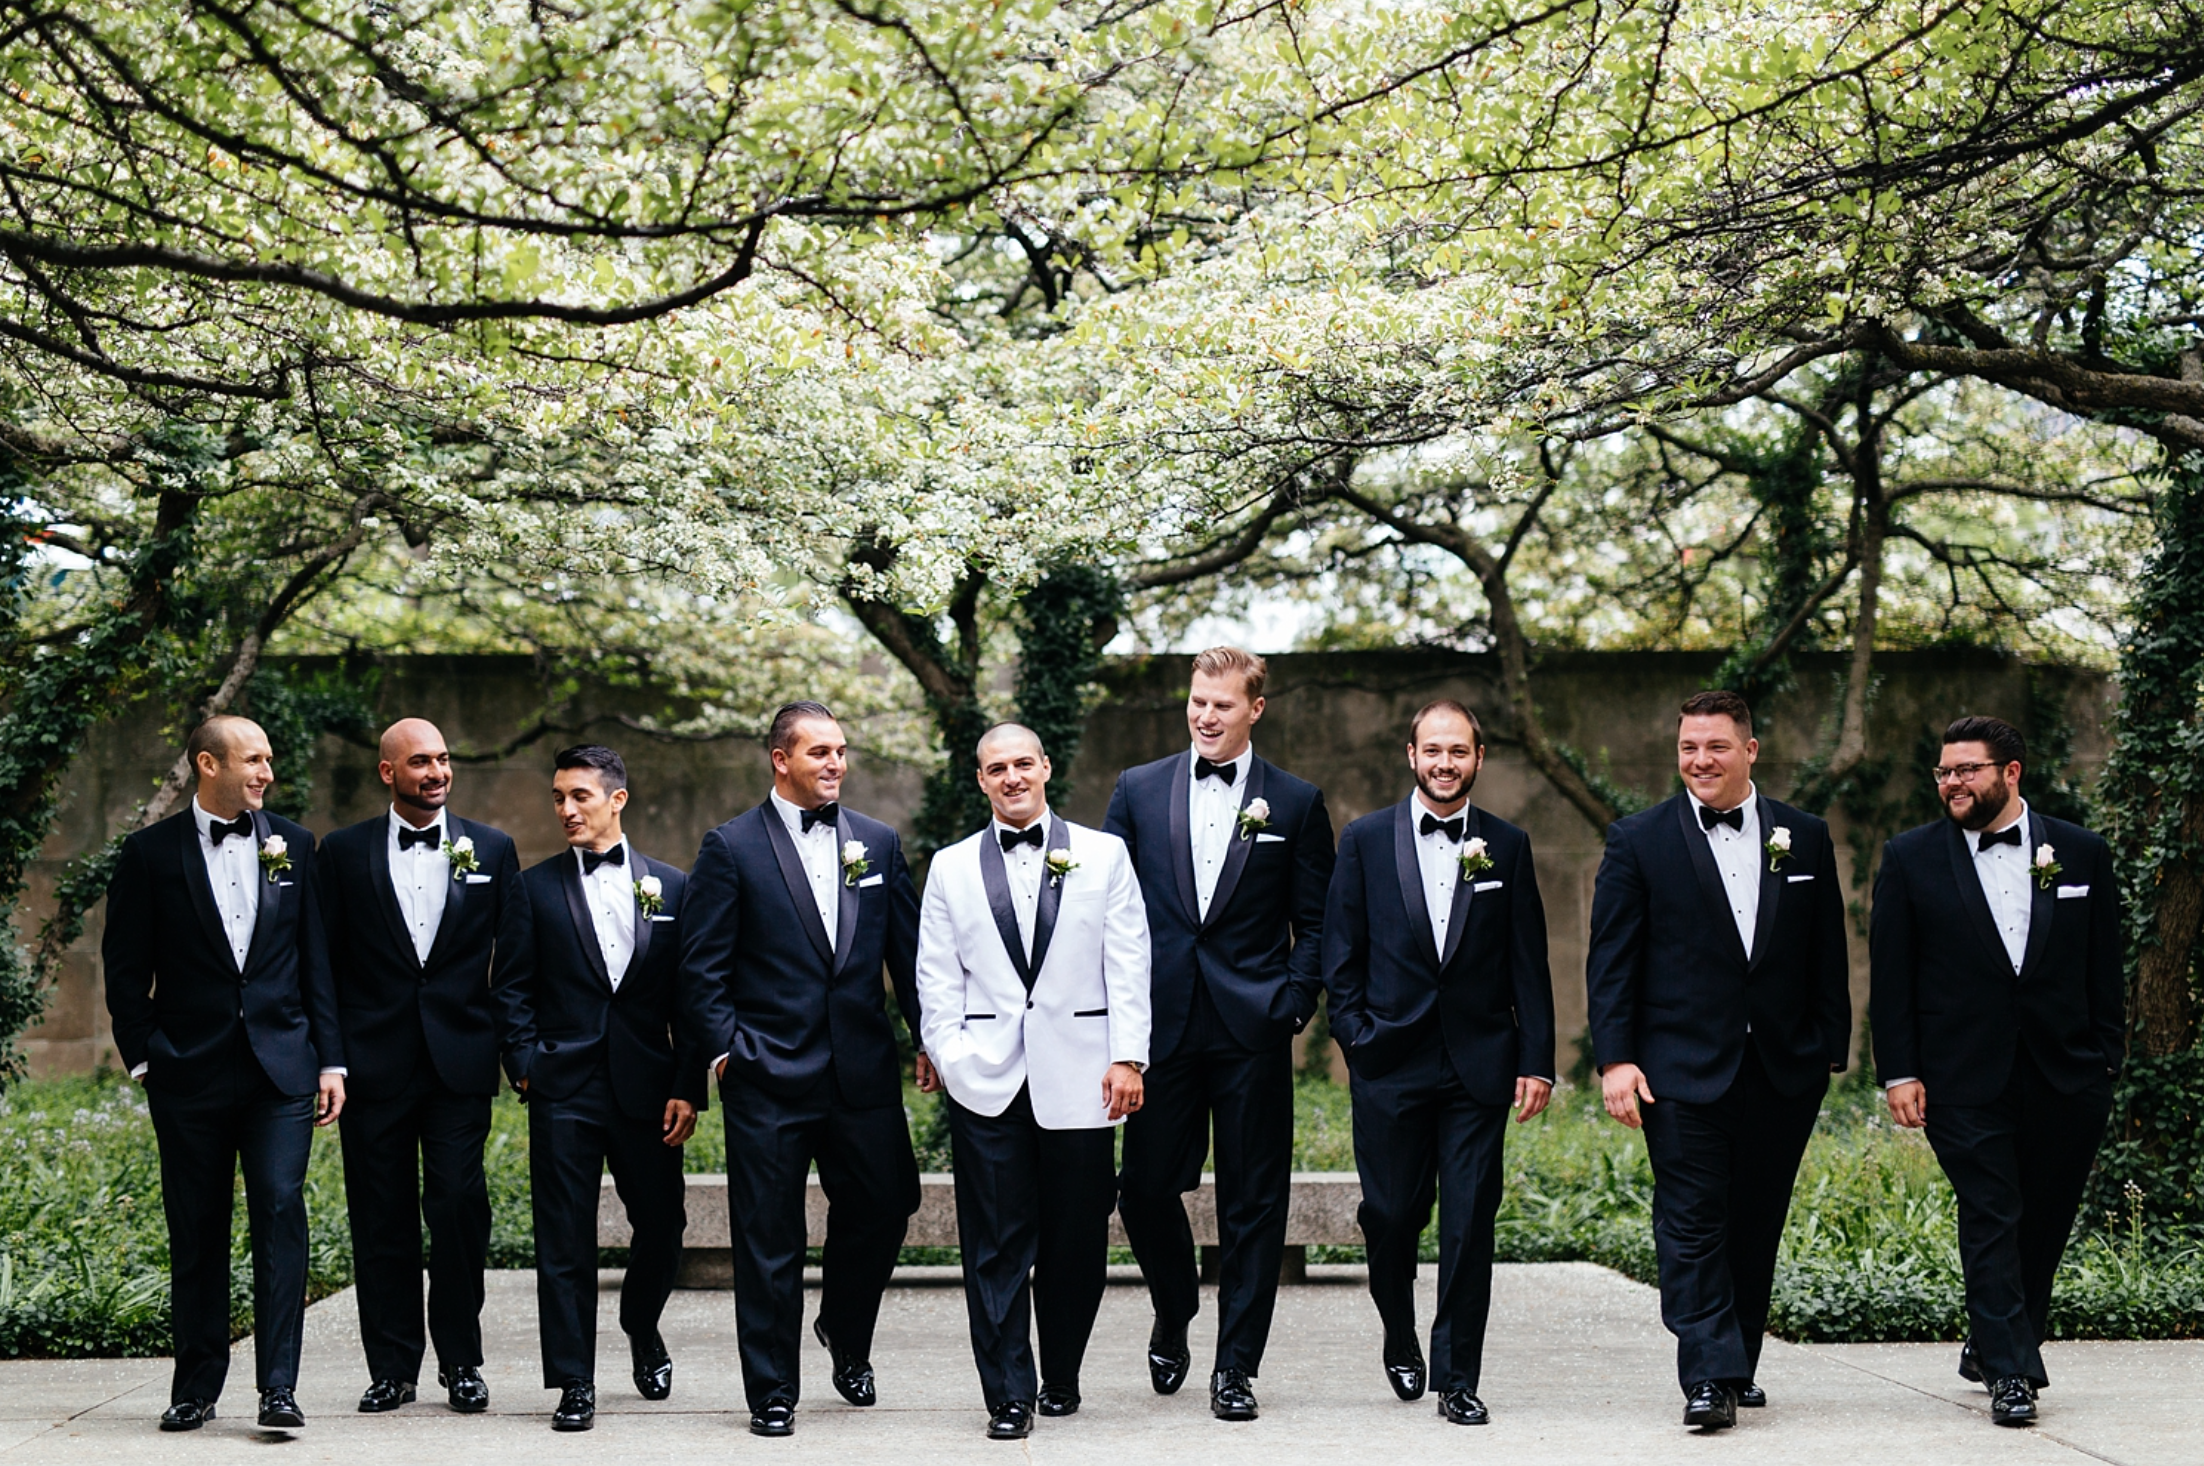 Chicago Wedding Photography south garden art institute of chicago groomsmen.png